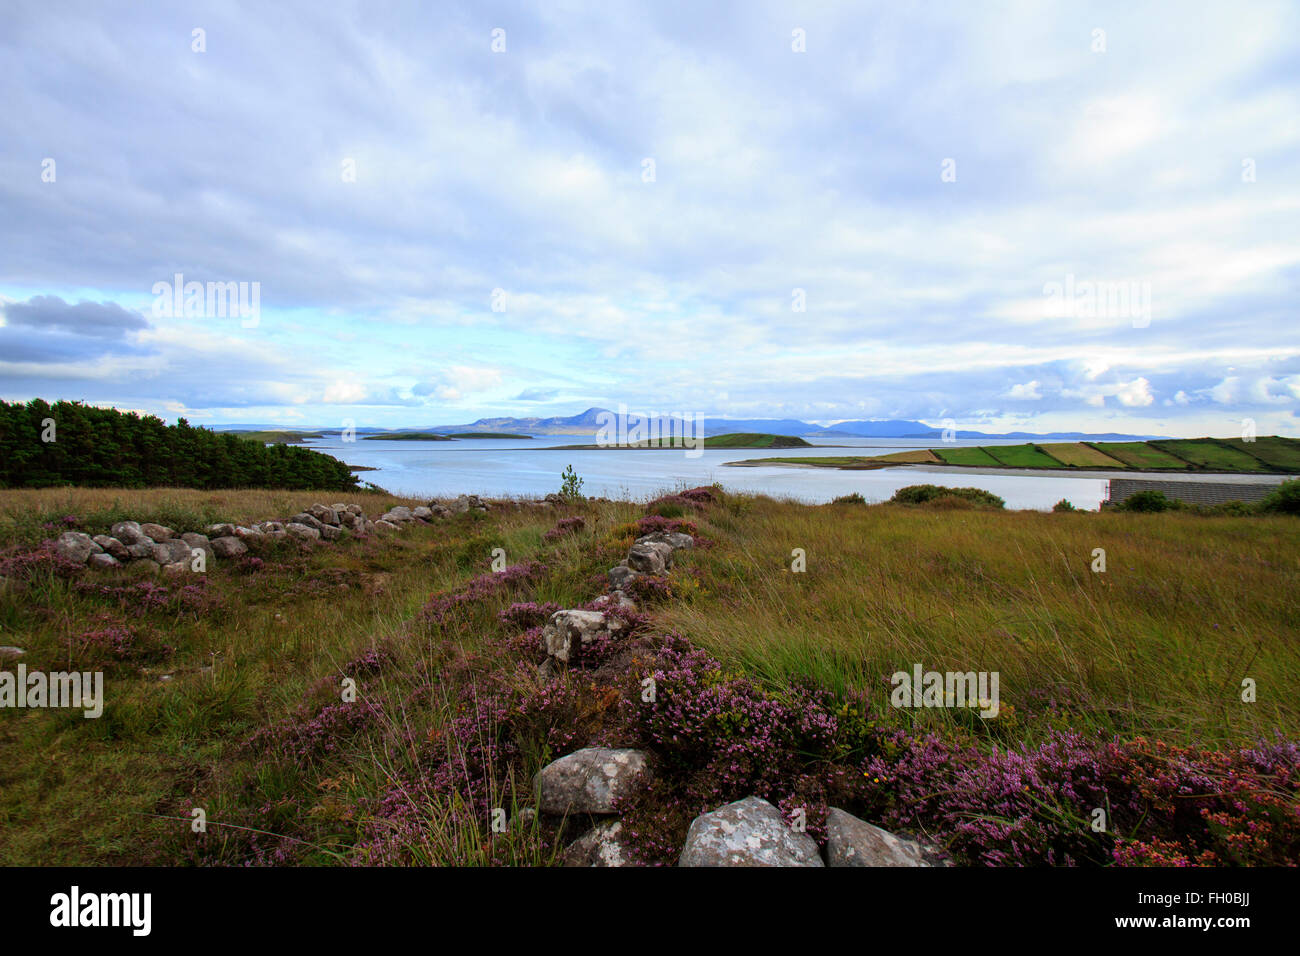 A field in which there is a heather covered stone wall in the foreground leading down to the sea and mountains - Stock Image